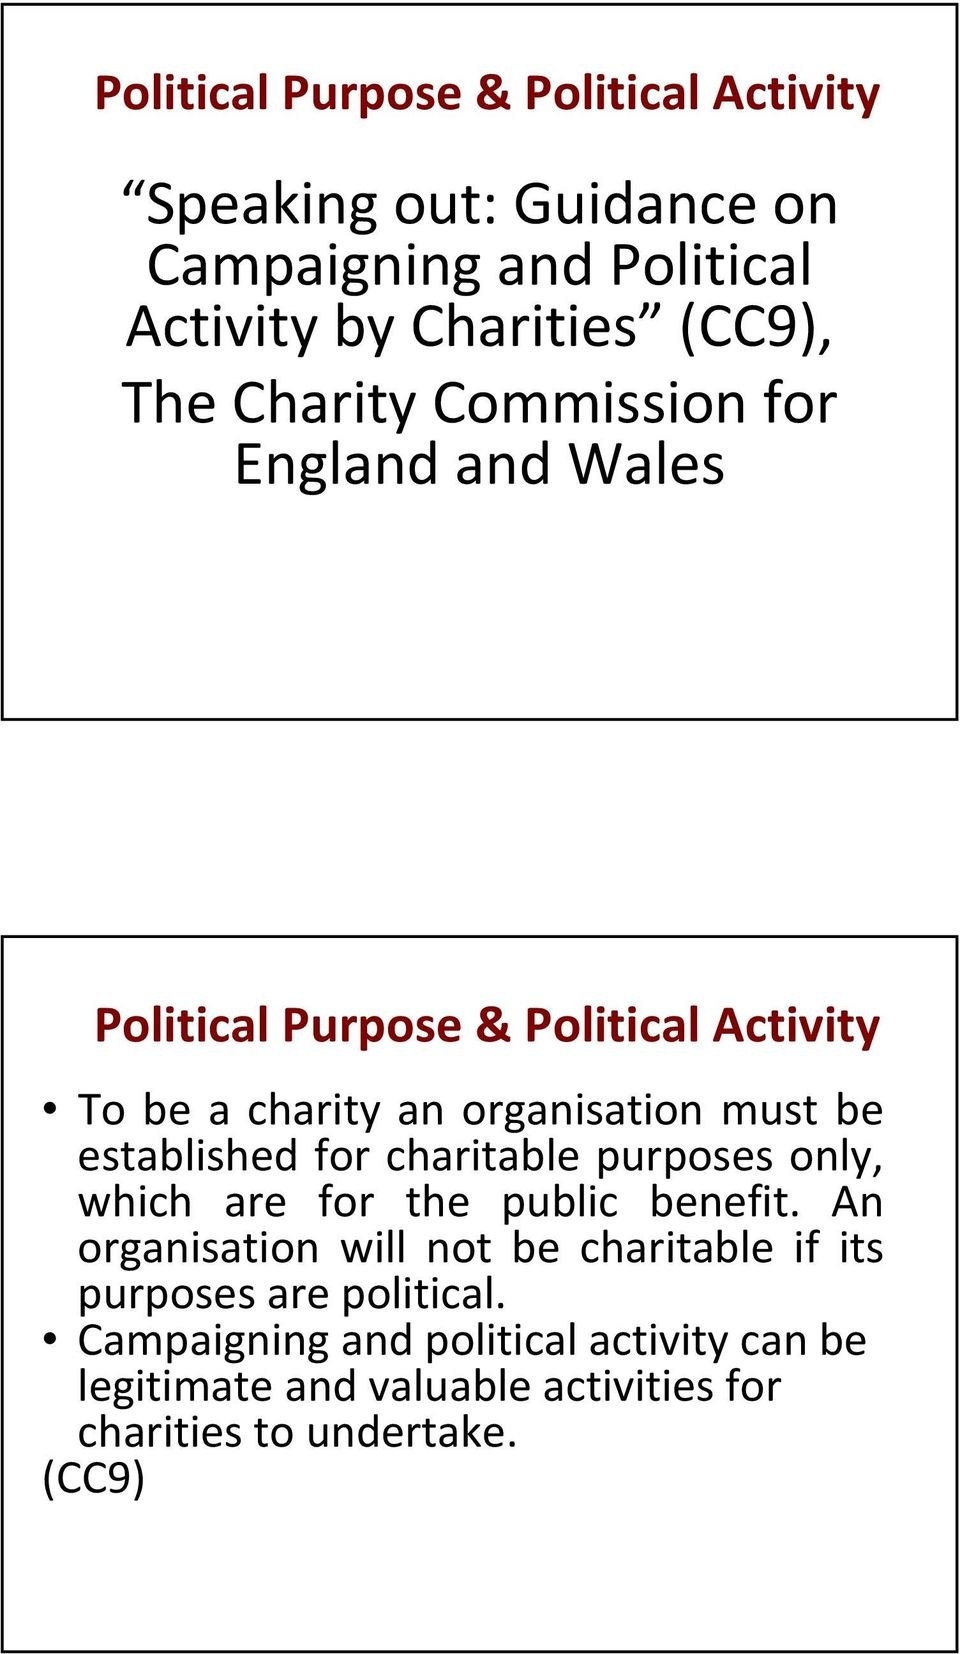 established for charitable purposes only, which are for the public benefit.